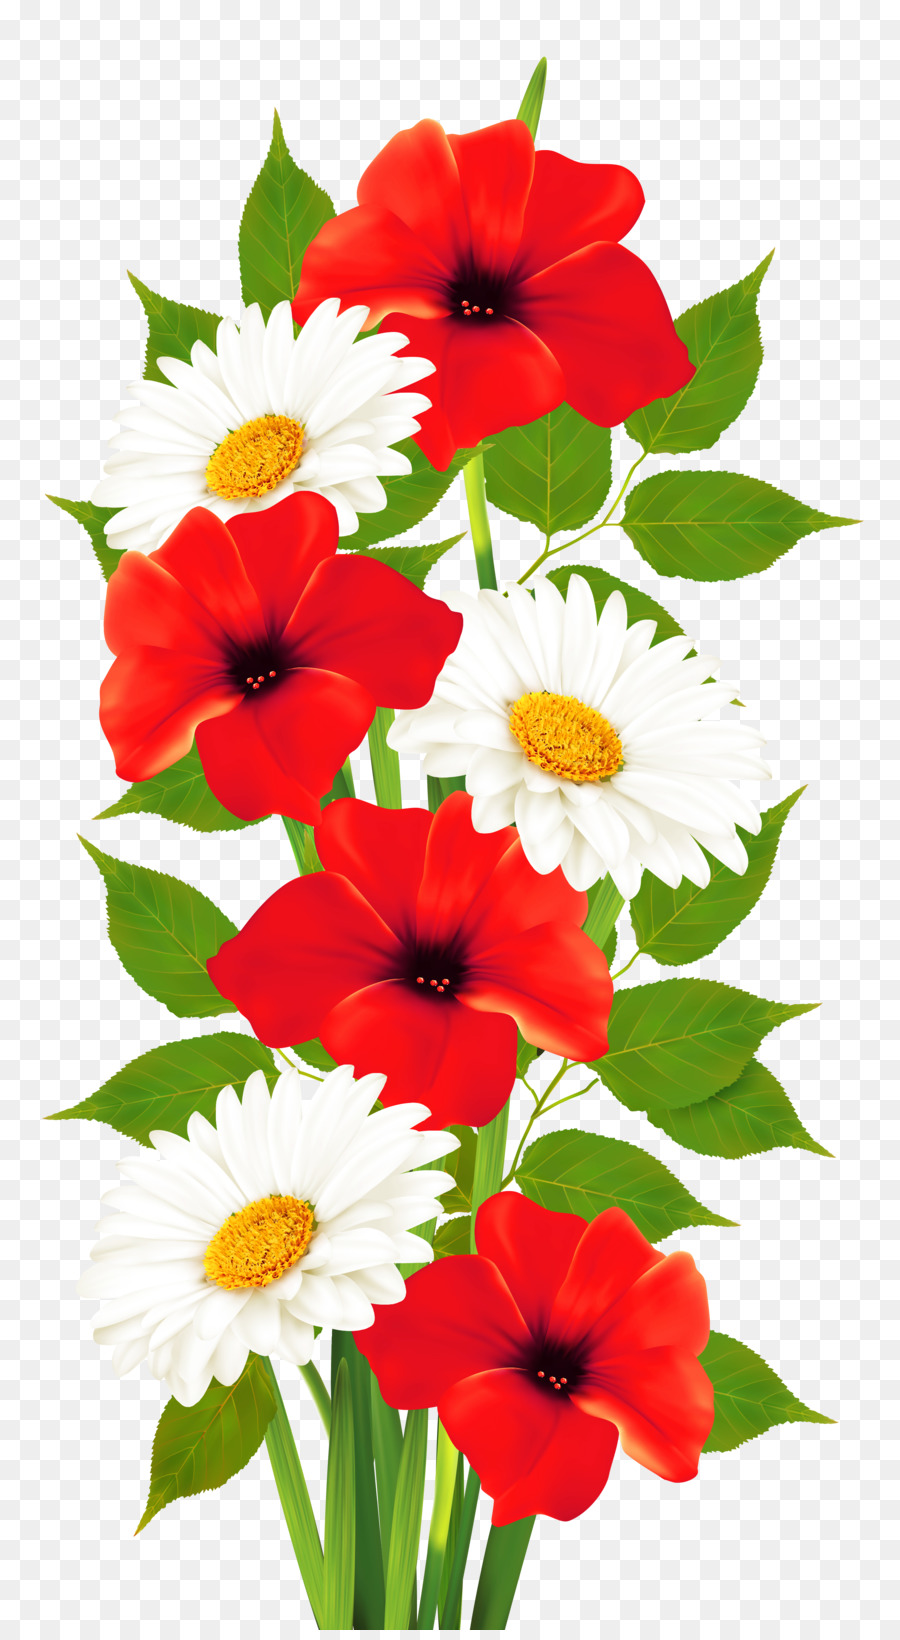 Remembrance Poppy Flower Clip Art Poppy Flower Cliparts Png